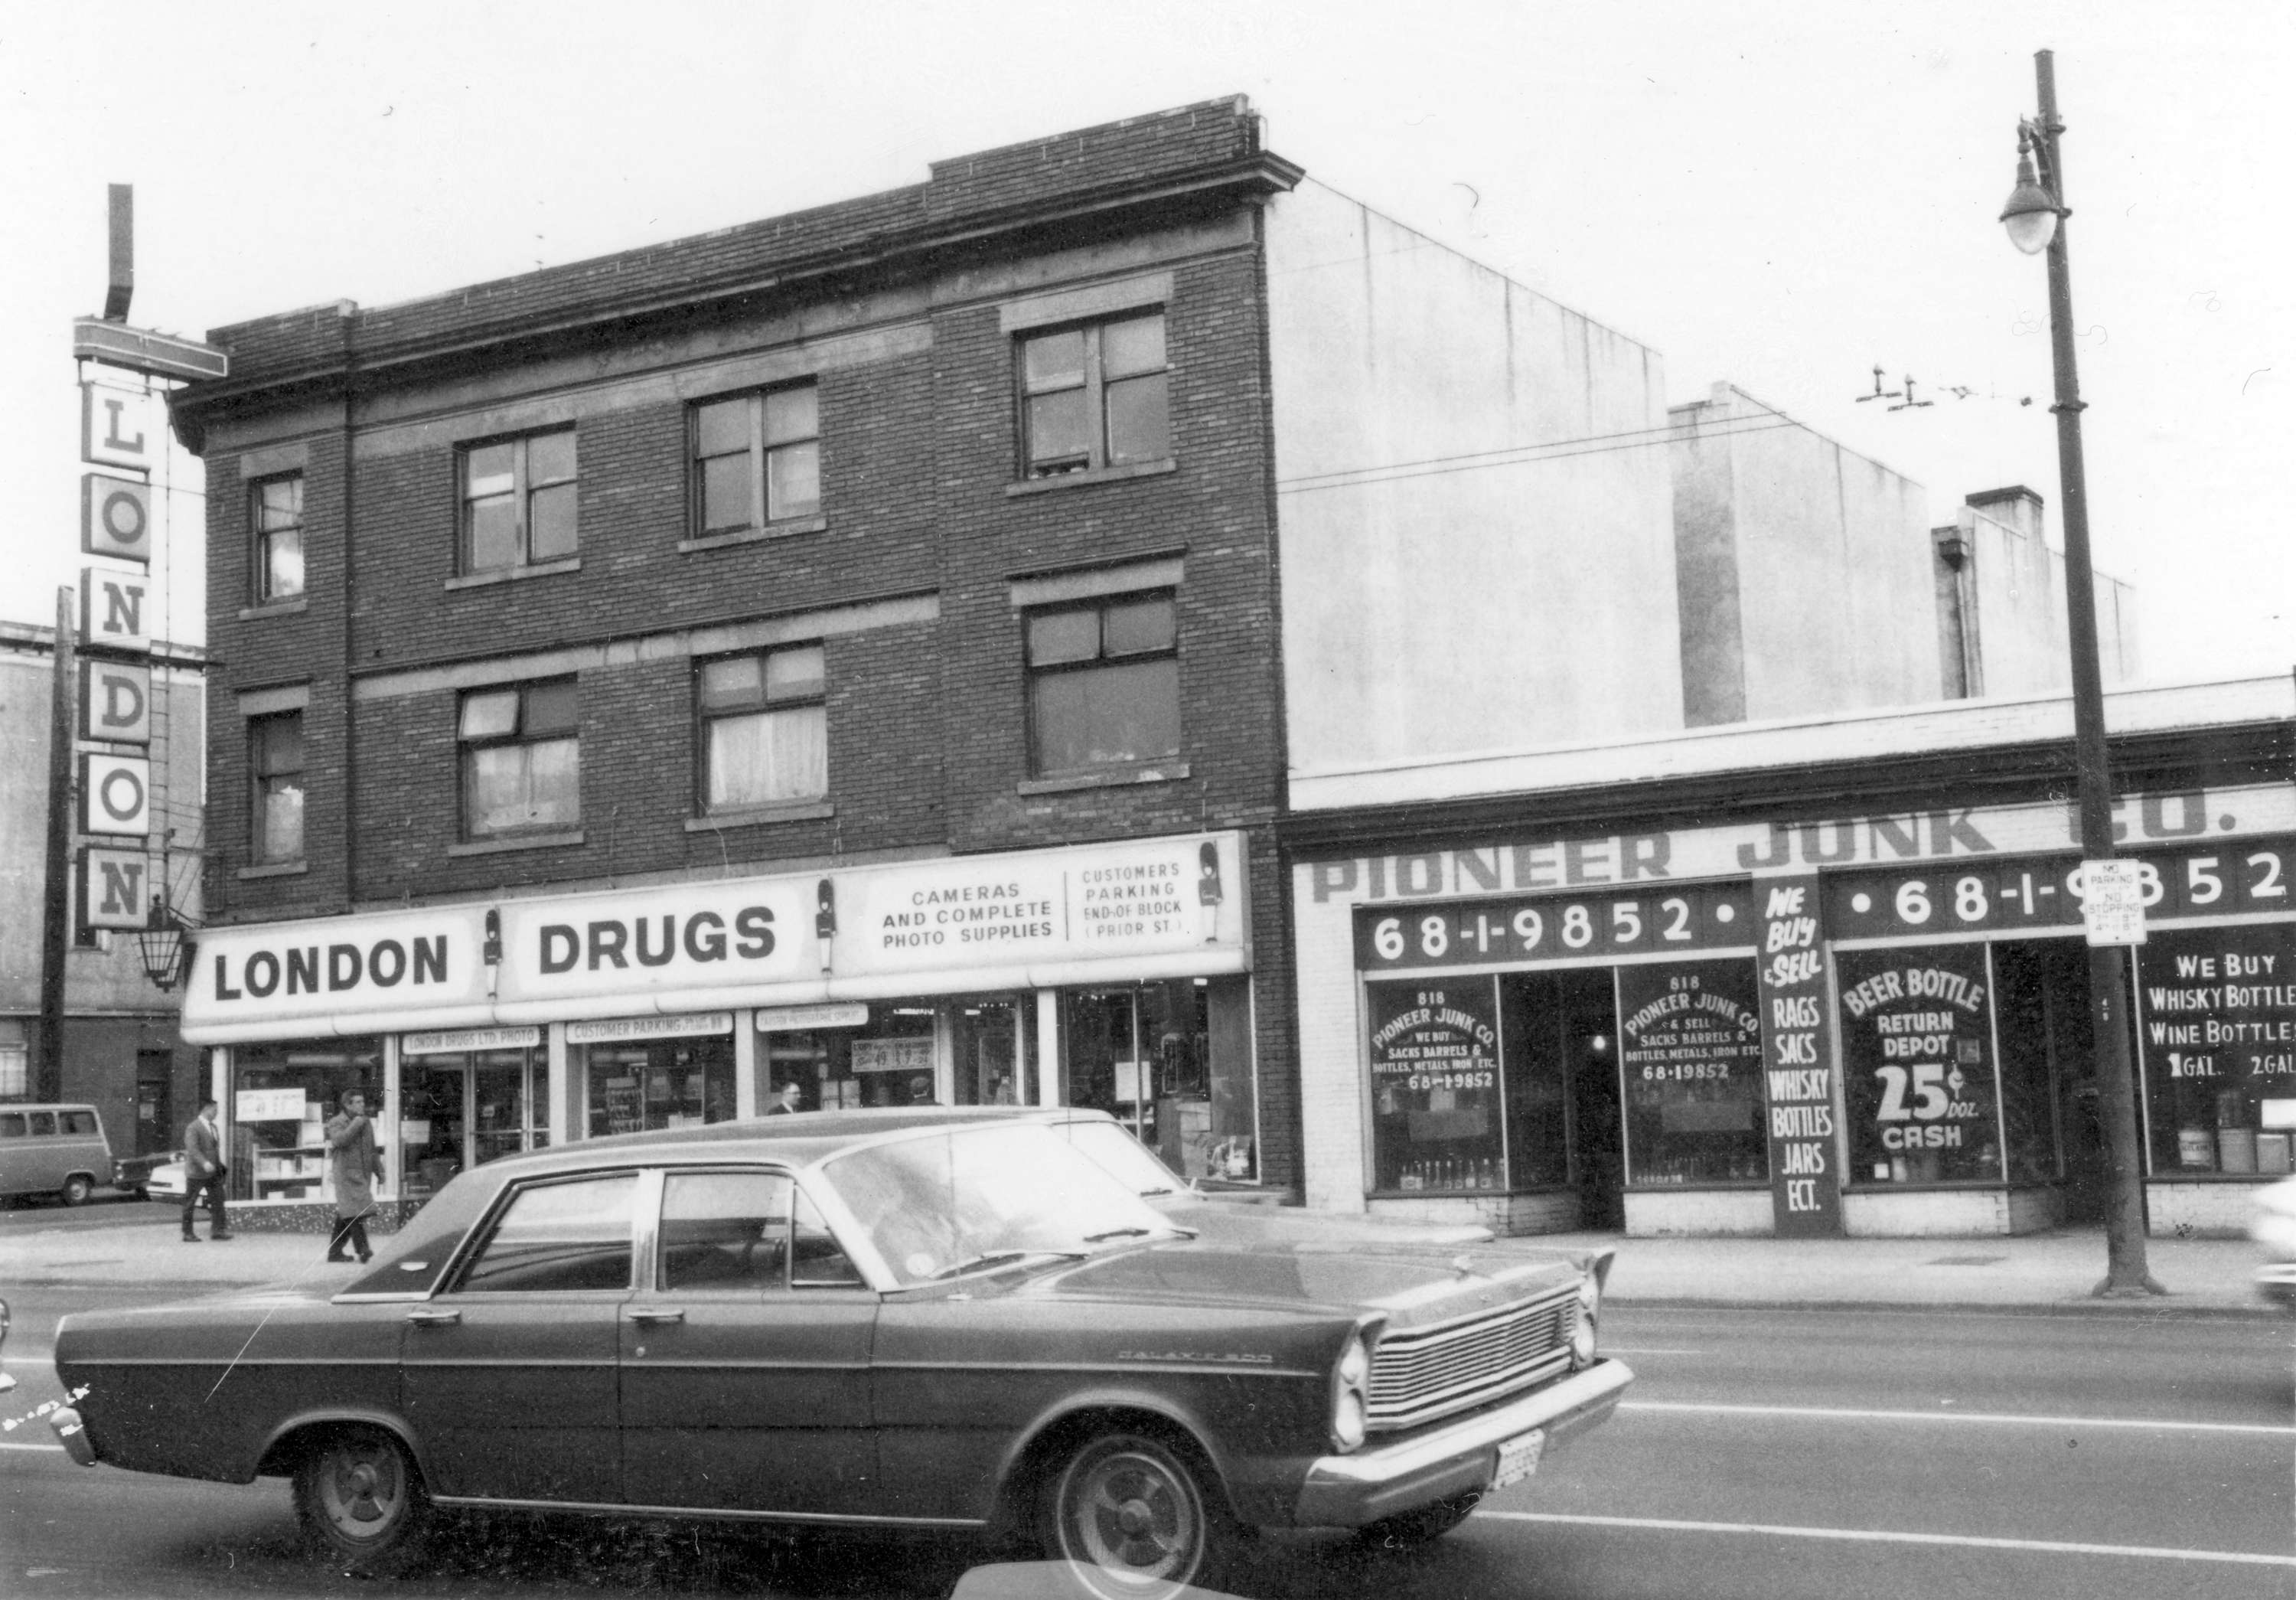 851px version of Vancouver-Old-London-Drugs.jpg